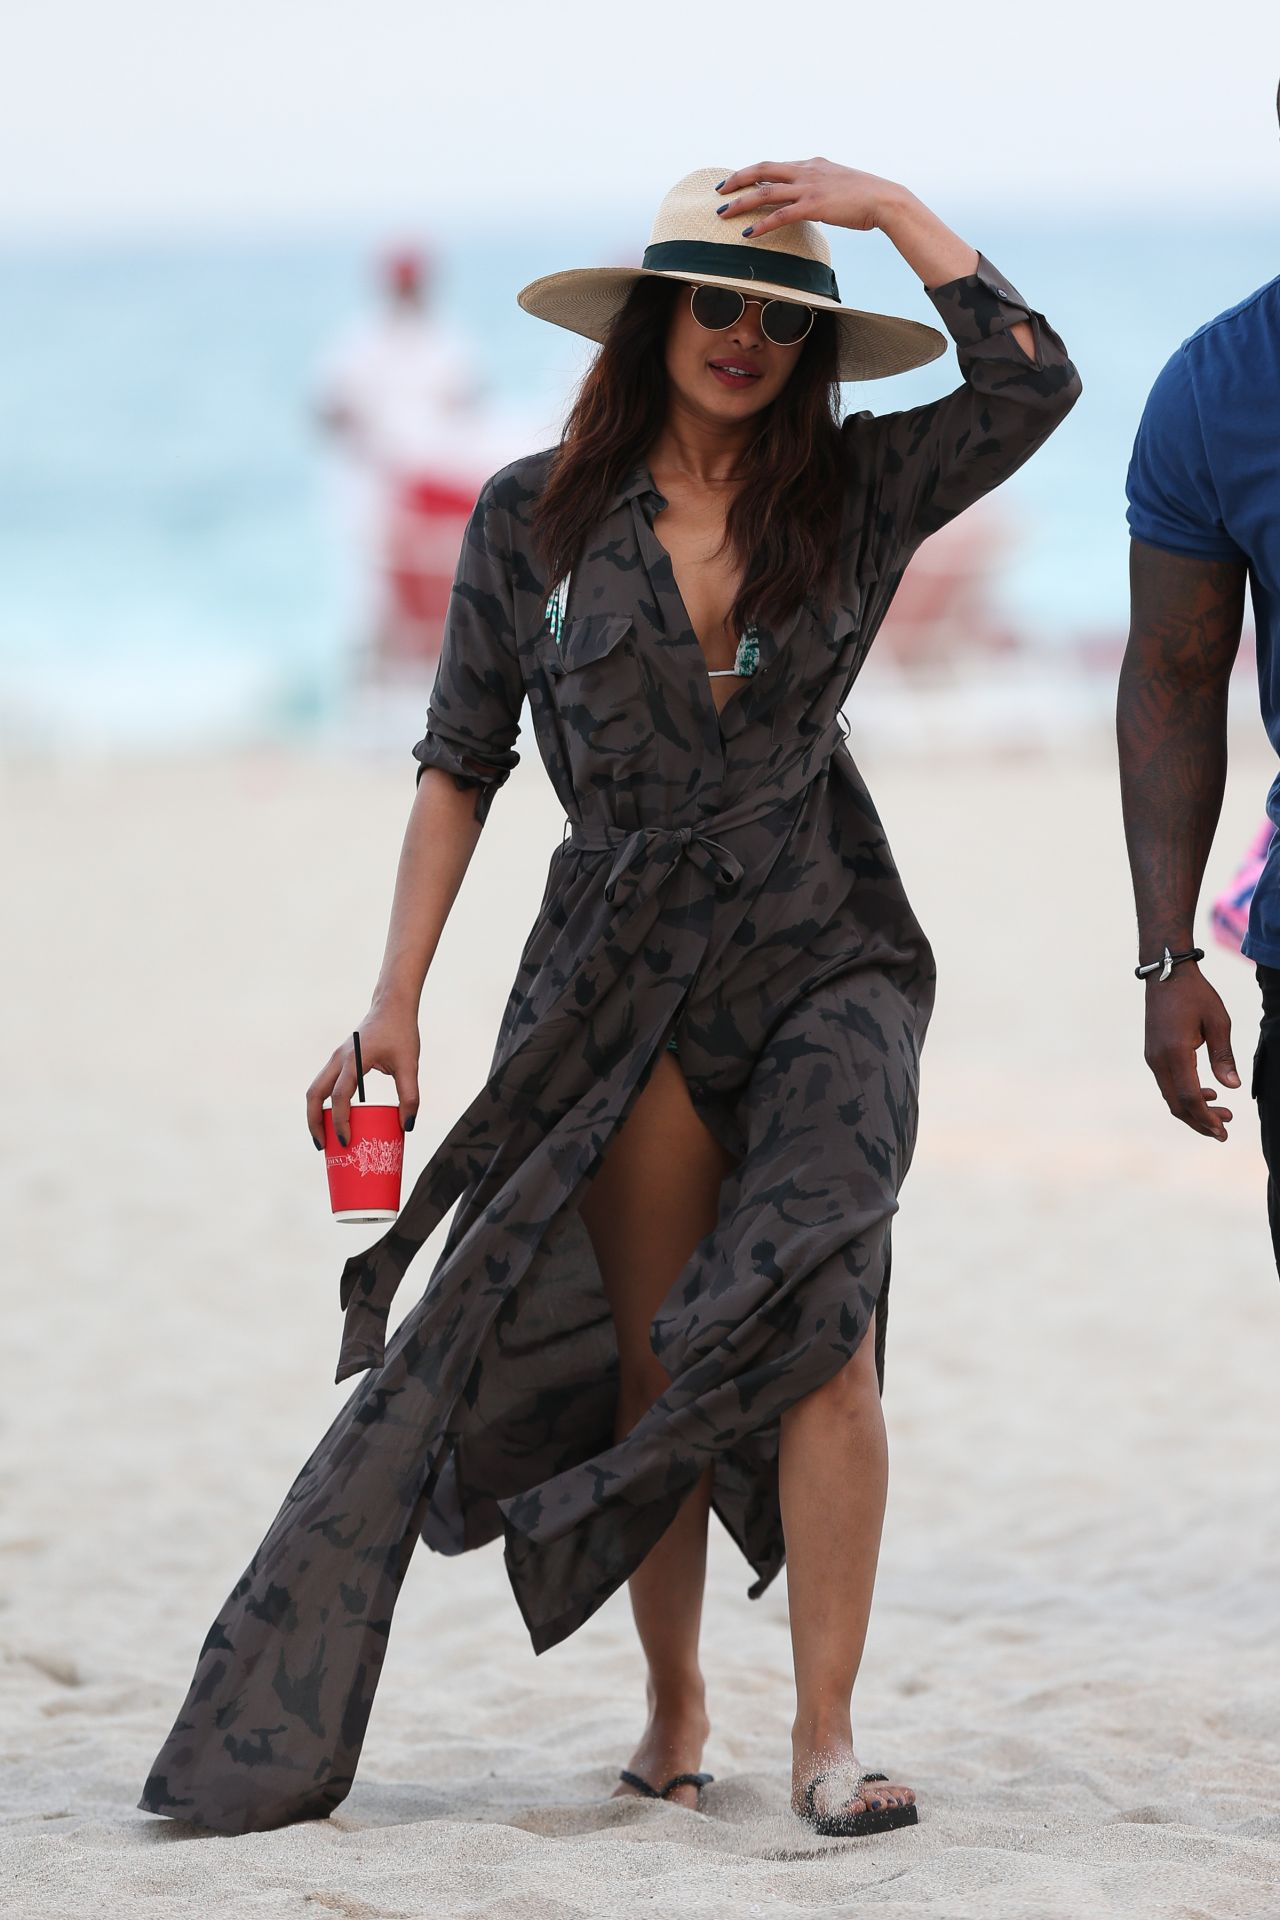 Priyanka Chopra on the Beach in Miami Beach 05/14/2017 Priyanka Chopra 2017 May